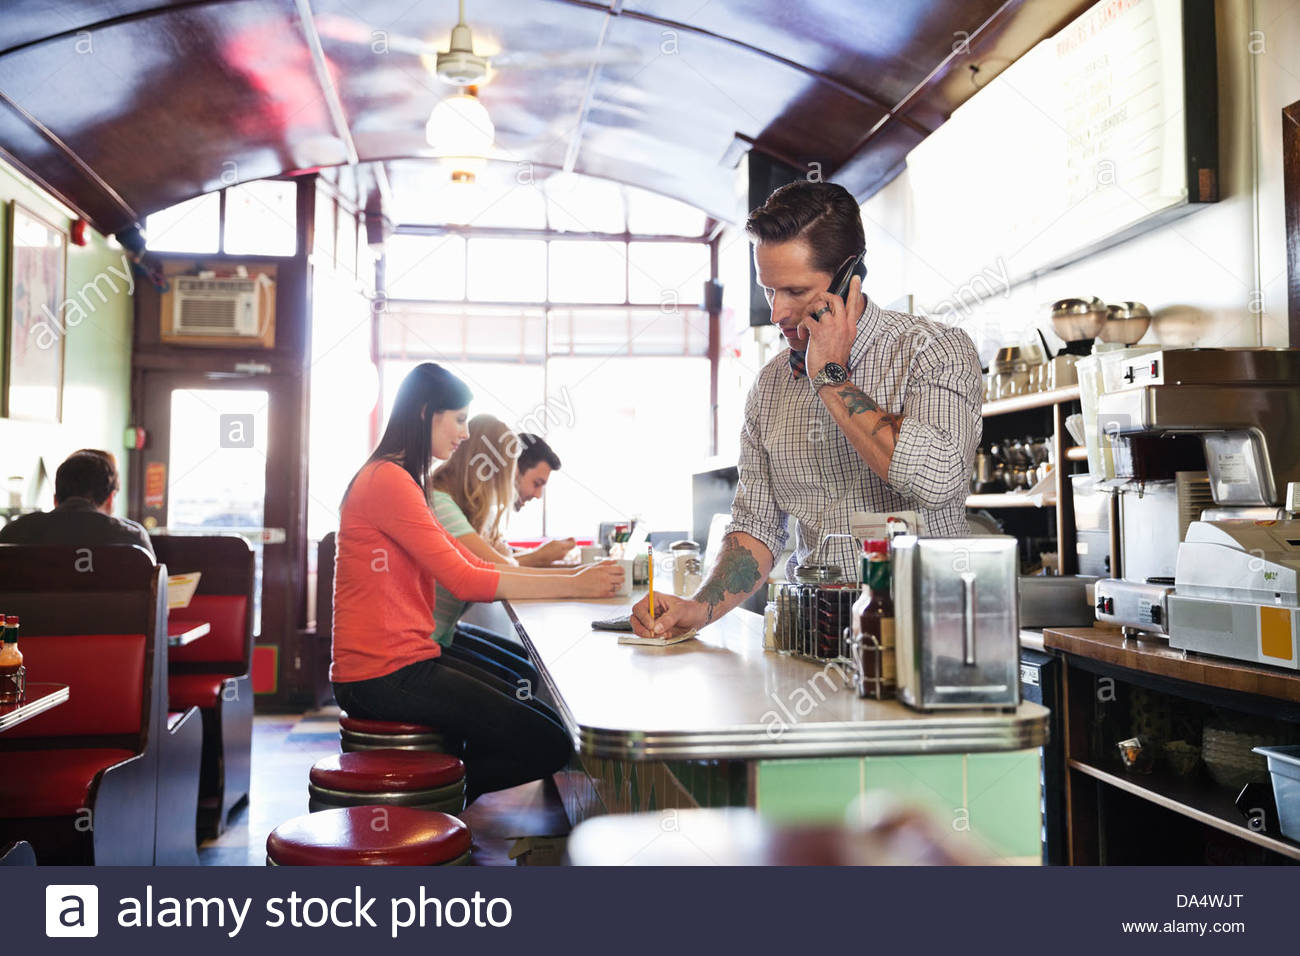 Diner owner taking order by phone at counter - Stock Image